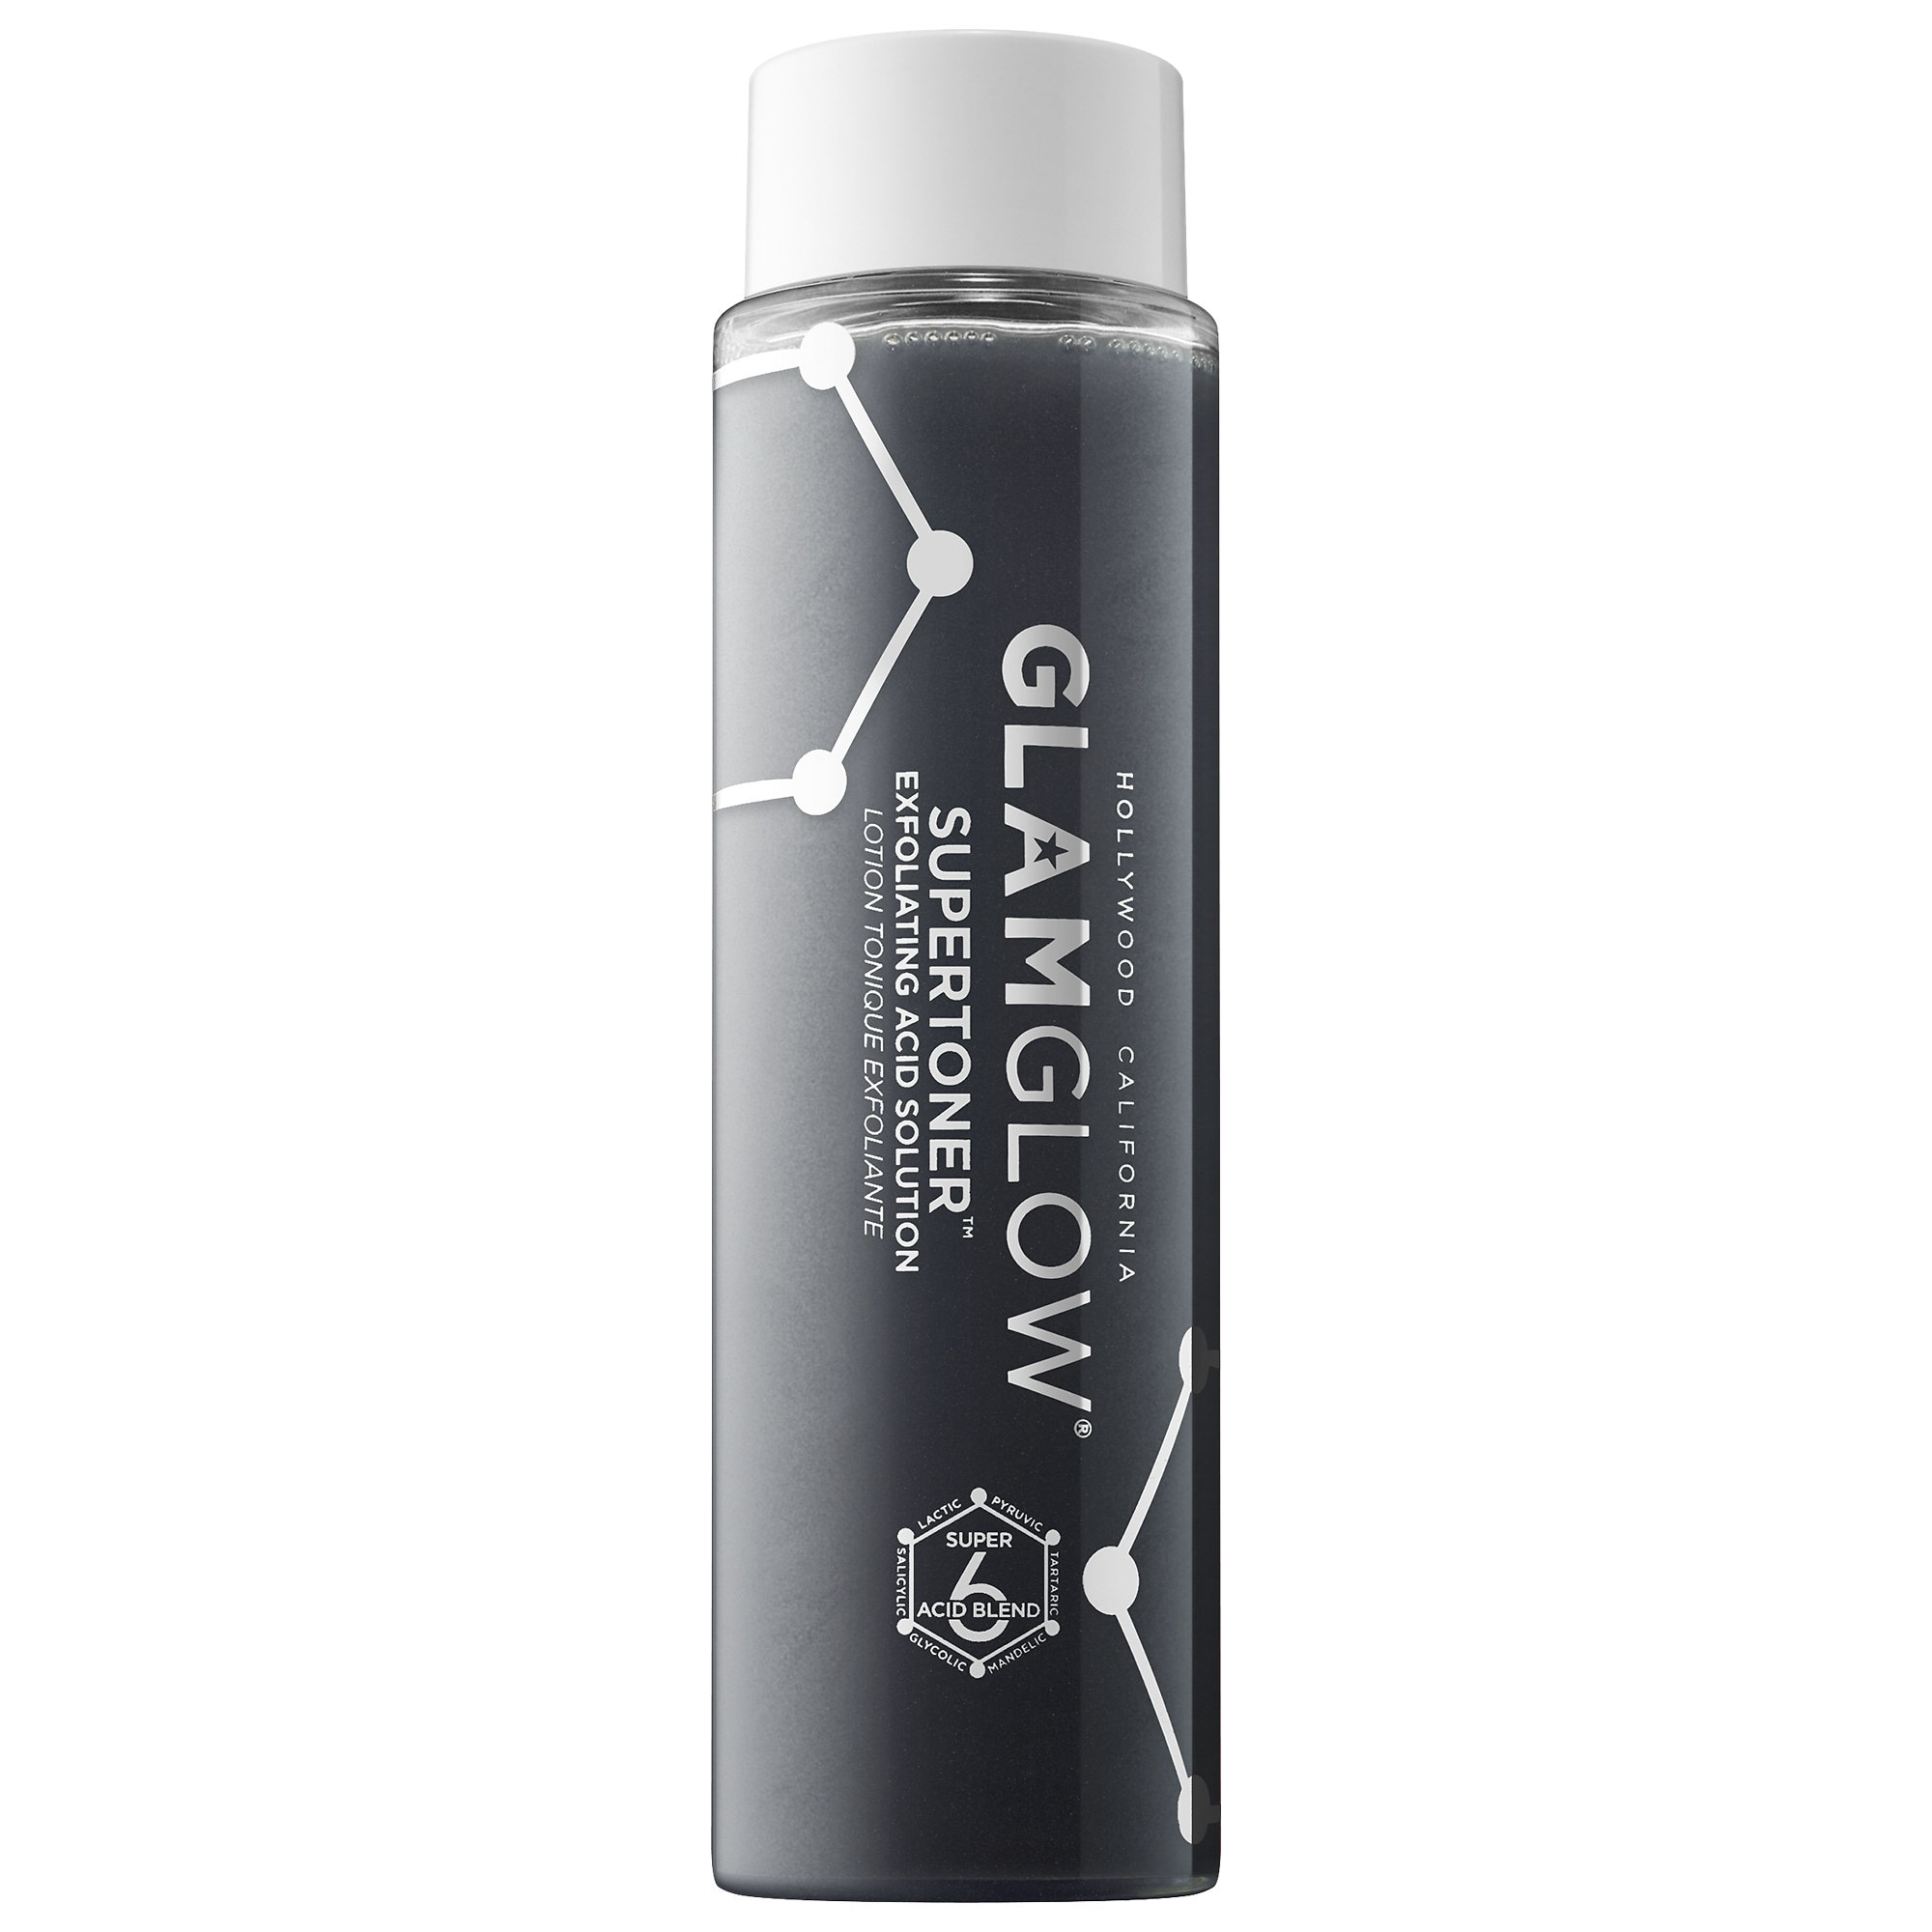 Glamglow - SUPERTONER™ Exfoliating Acid Solution Toner